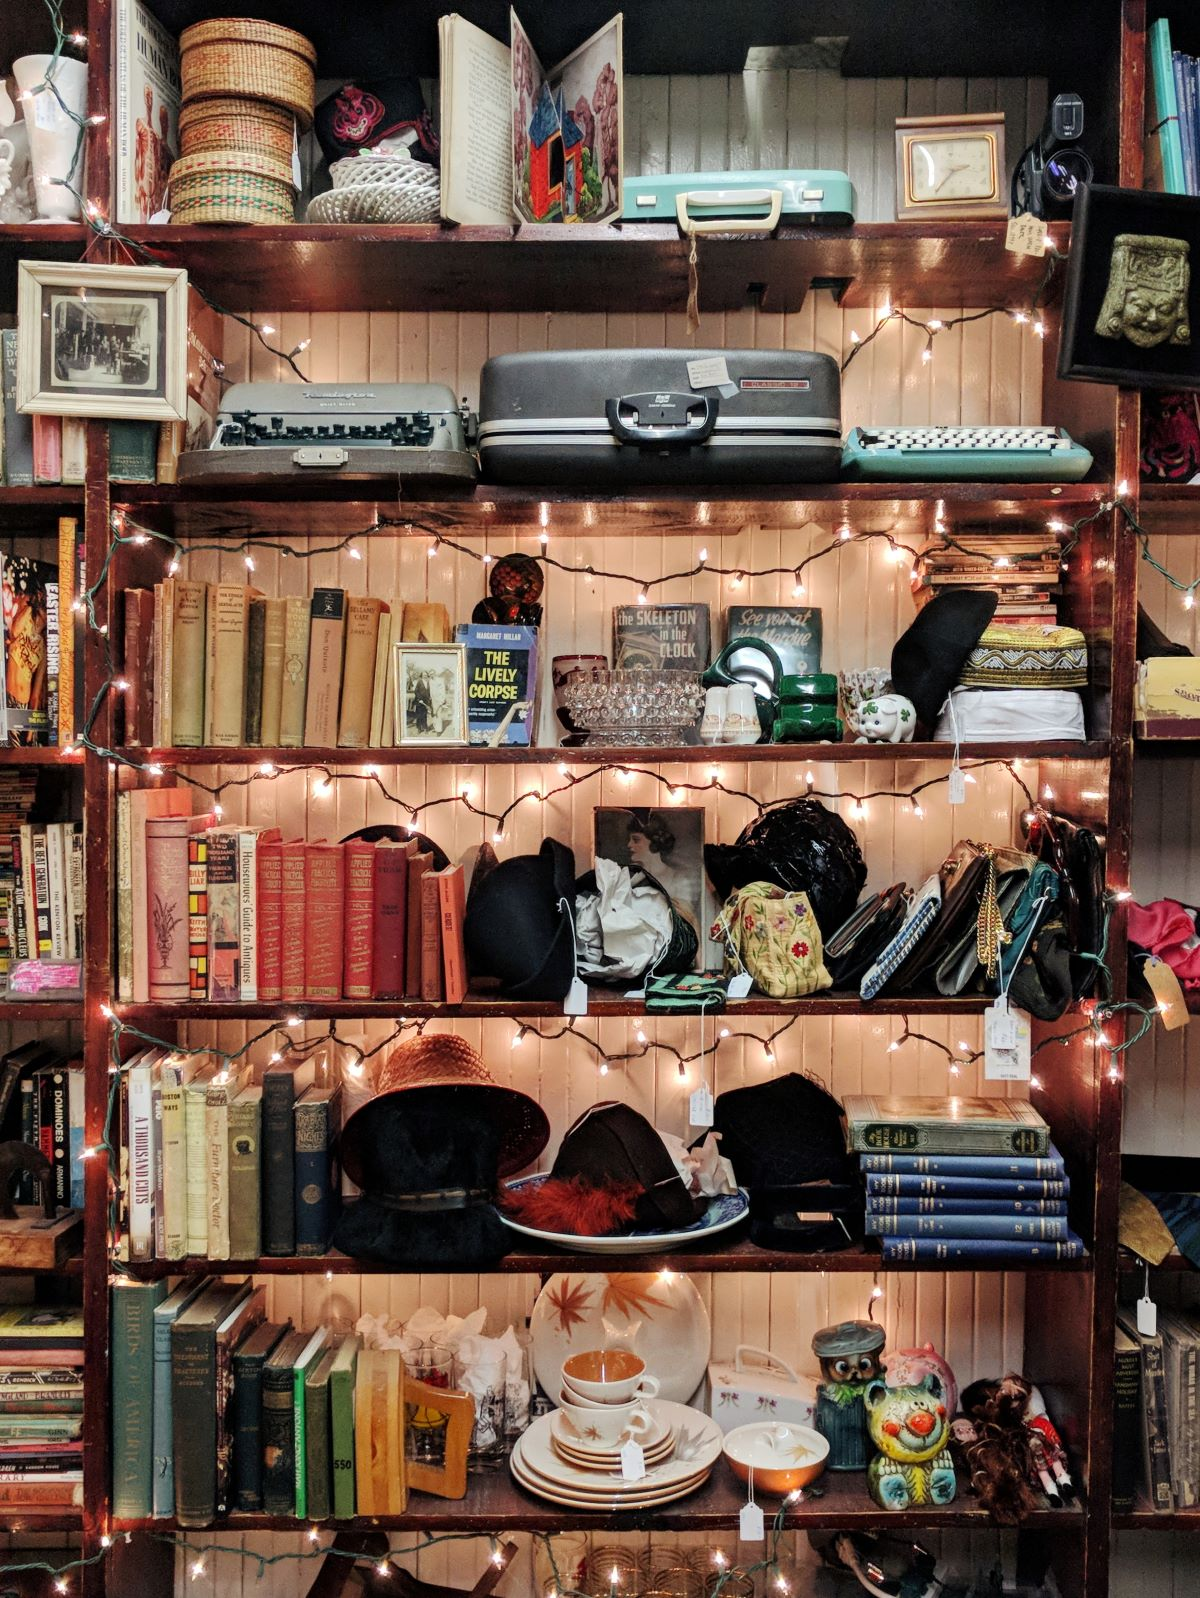 Finders Keepers antique store in Lee, MA that's decorated with string lights and full of books, china, typewriters, and hats